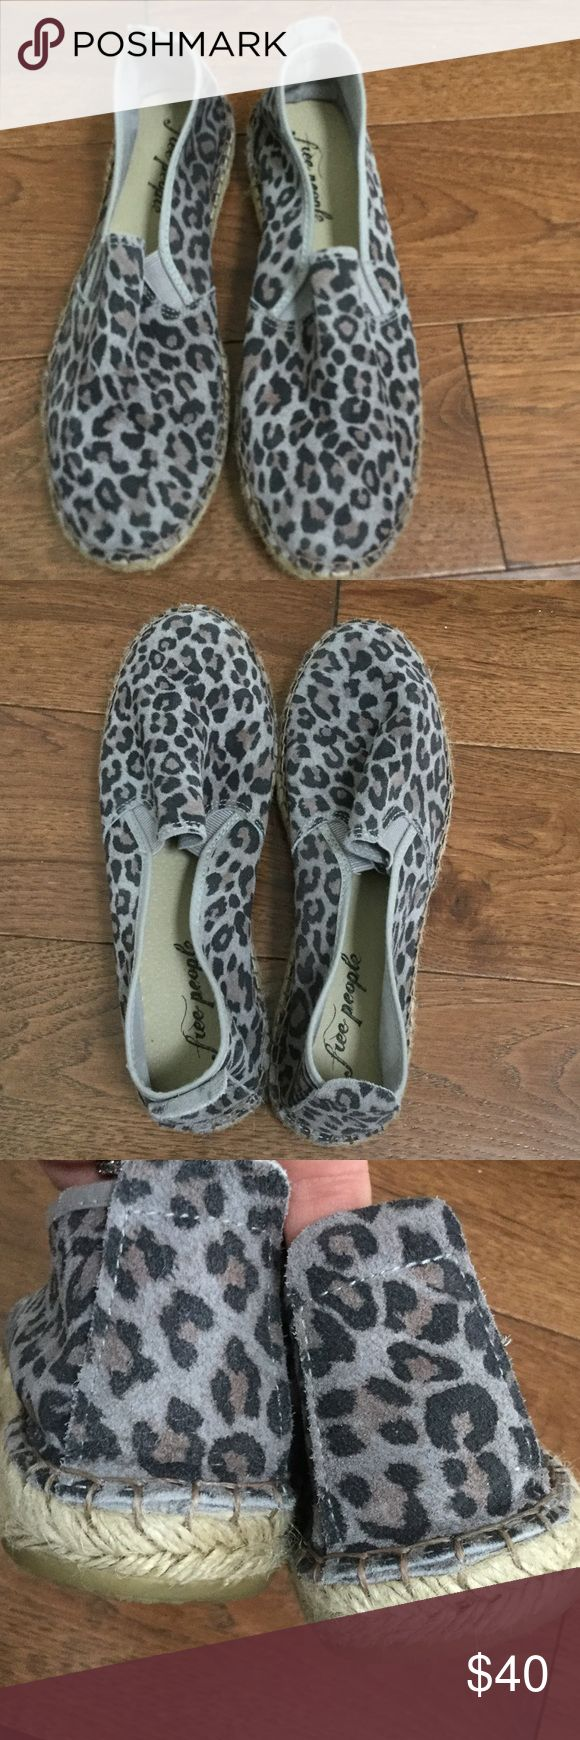 FREE PEOPLE GREY ESPADRILLES FREE PEOPLE GREY PANTHER ESPADRILLES. COMES WITH BOX. HARDLY WORN. GORGEOUS PATTERN. VERY COMFORTABLE Free People Shoes Espadrilles